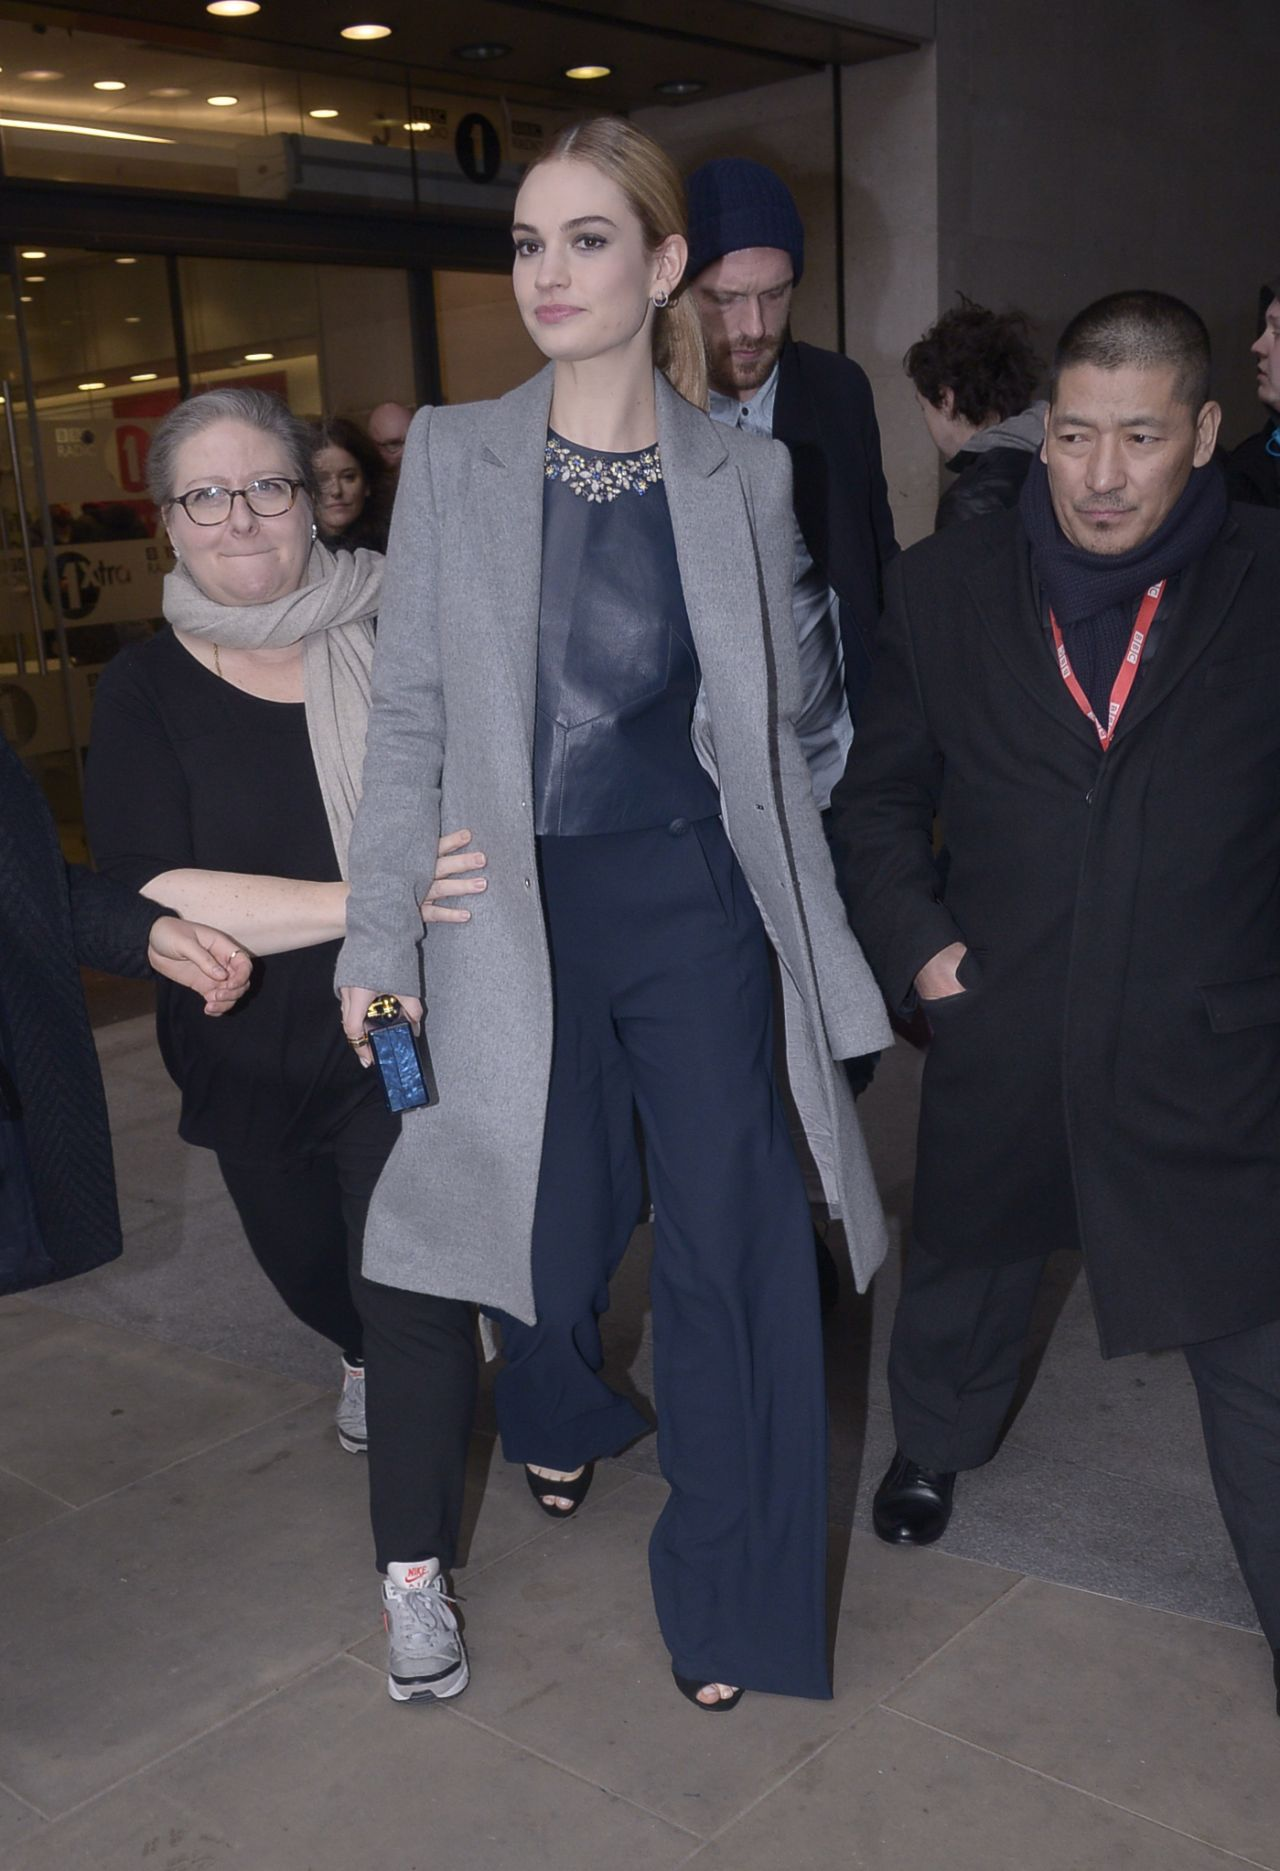 Lily James Leaving BBC Radio 1 Studios in London, March 2015